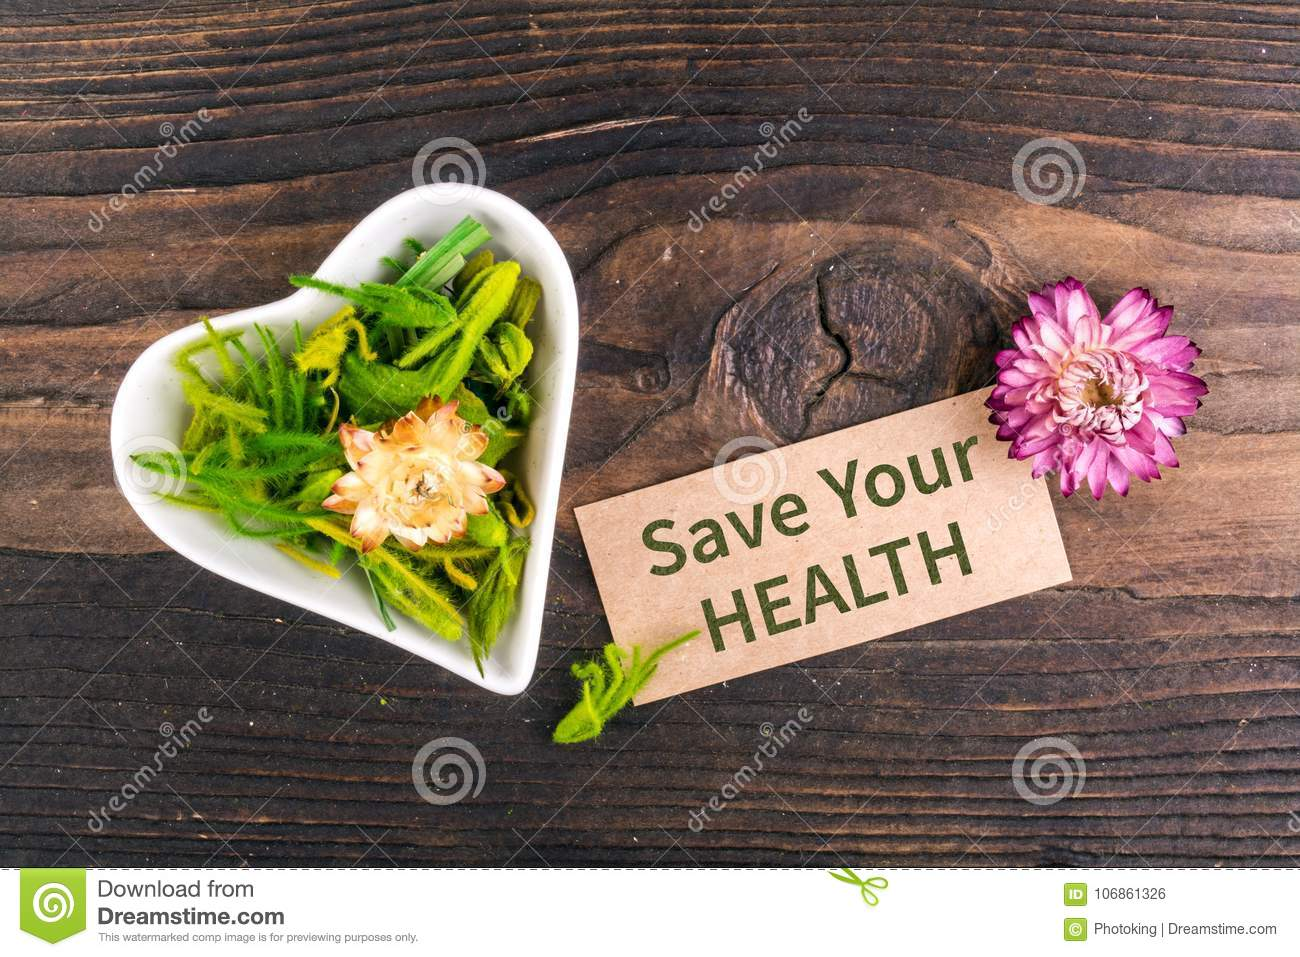 Save your health text on card